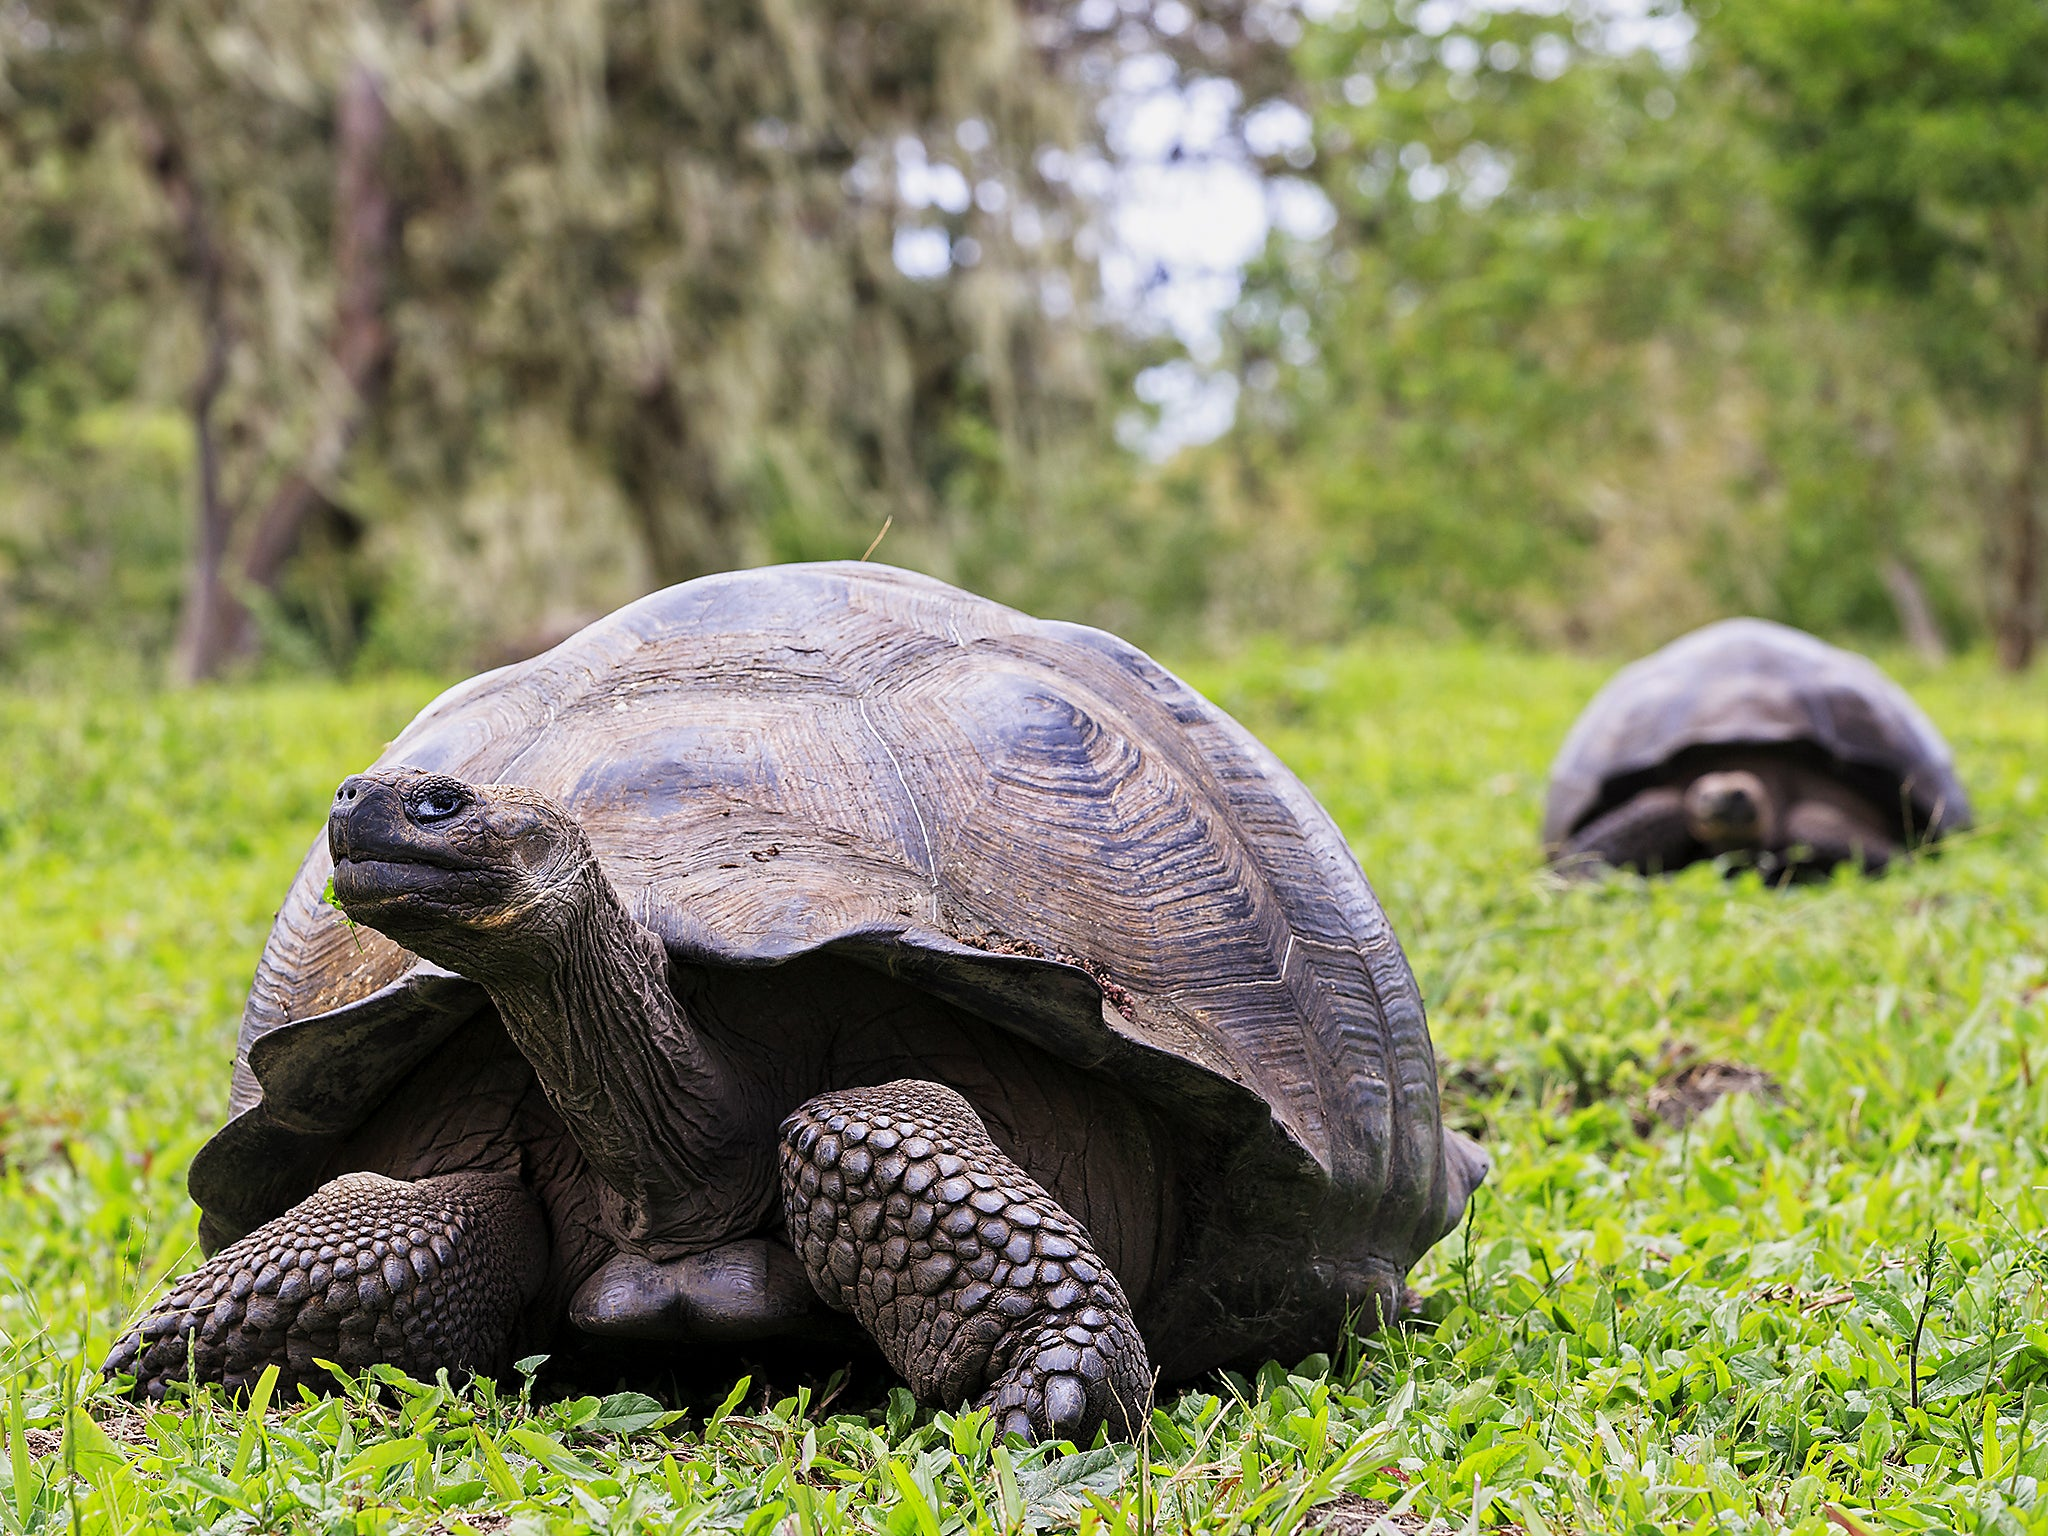 galapagos tortoise Facts and information about galapagos tortoise galapagos tortoise, behavior, feeding, reproduction, galapagos tortoise threats and more.